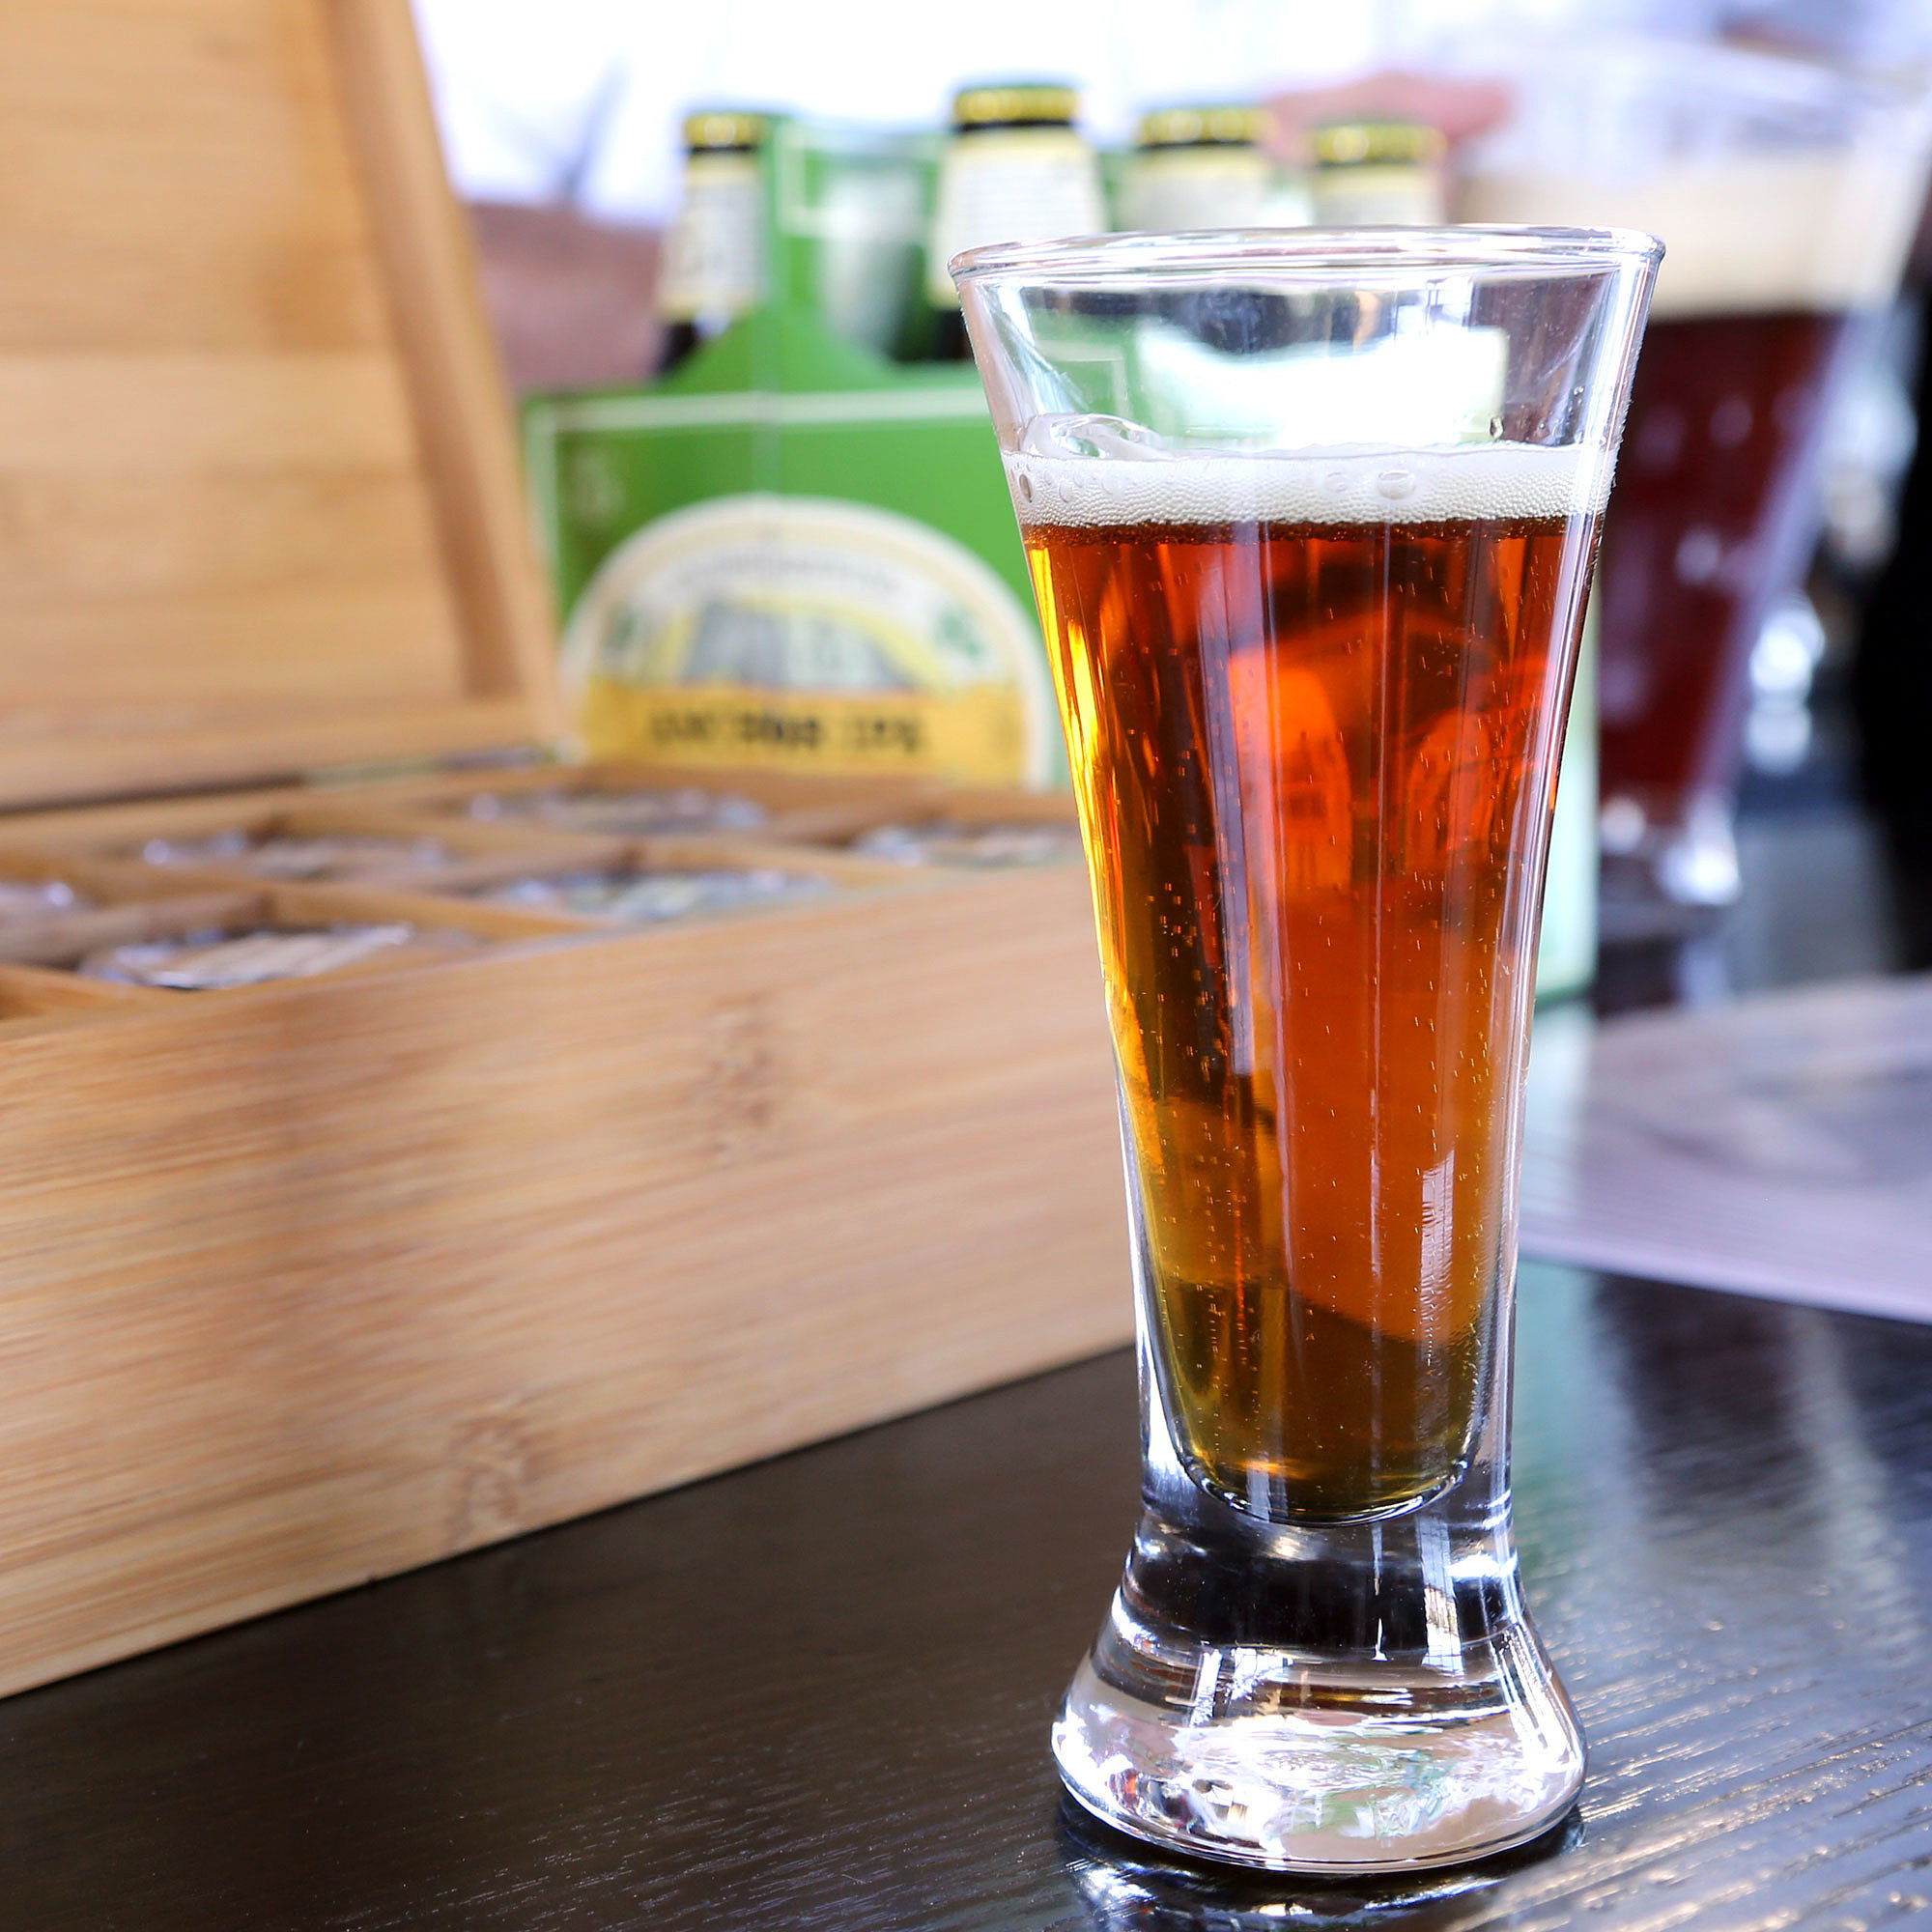 Drink These Beers If You're Trying to Lose Weight